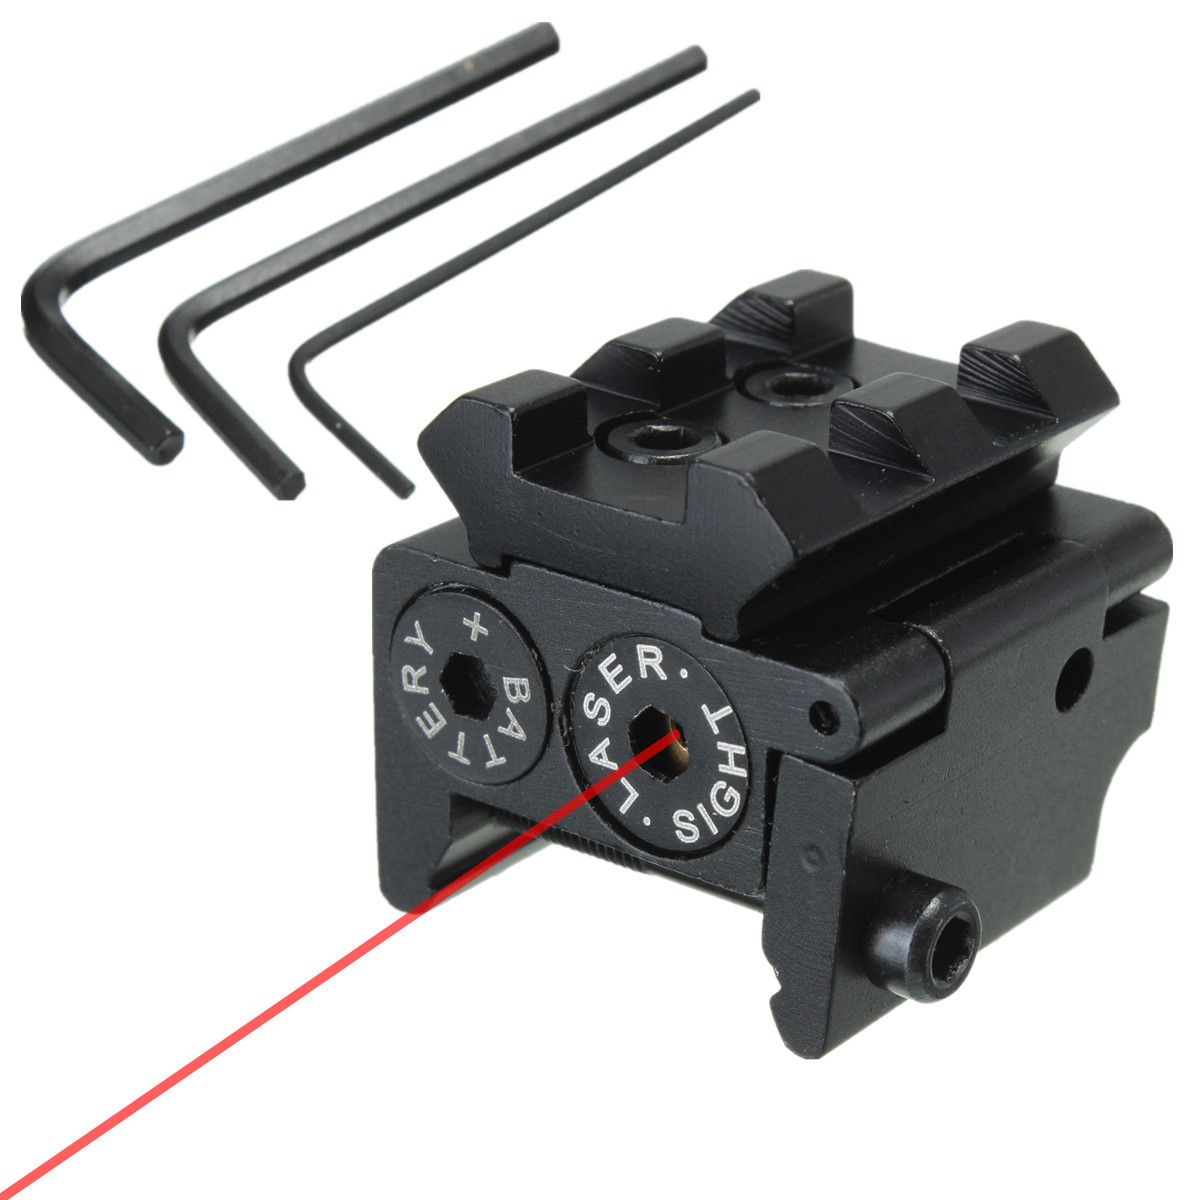 Mini Compact Tactical Red Dot Laser Bore Sight Scope With 20mm Picatinny Rail Mount air telescope rifle mil dot 3 9x40 ao tactical red green blue llluminate rifle scope optical sight air scopes w sunshade